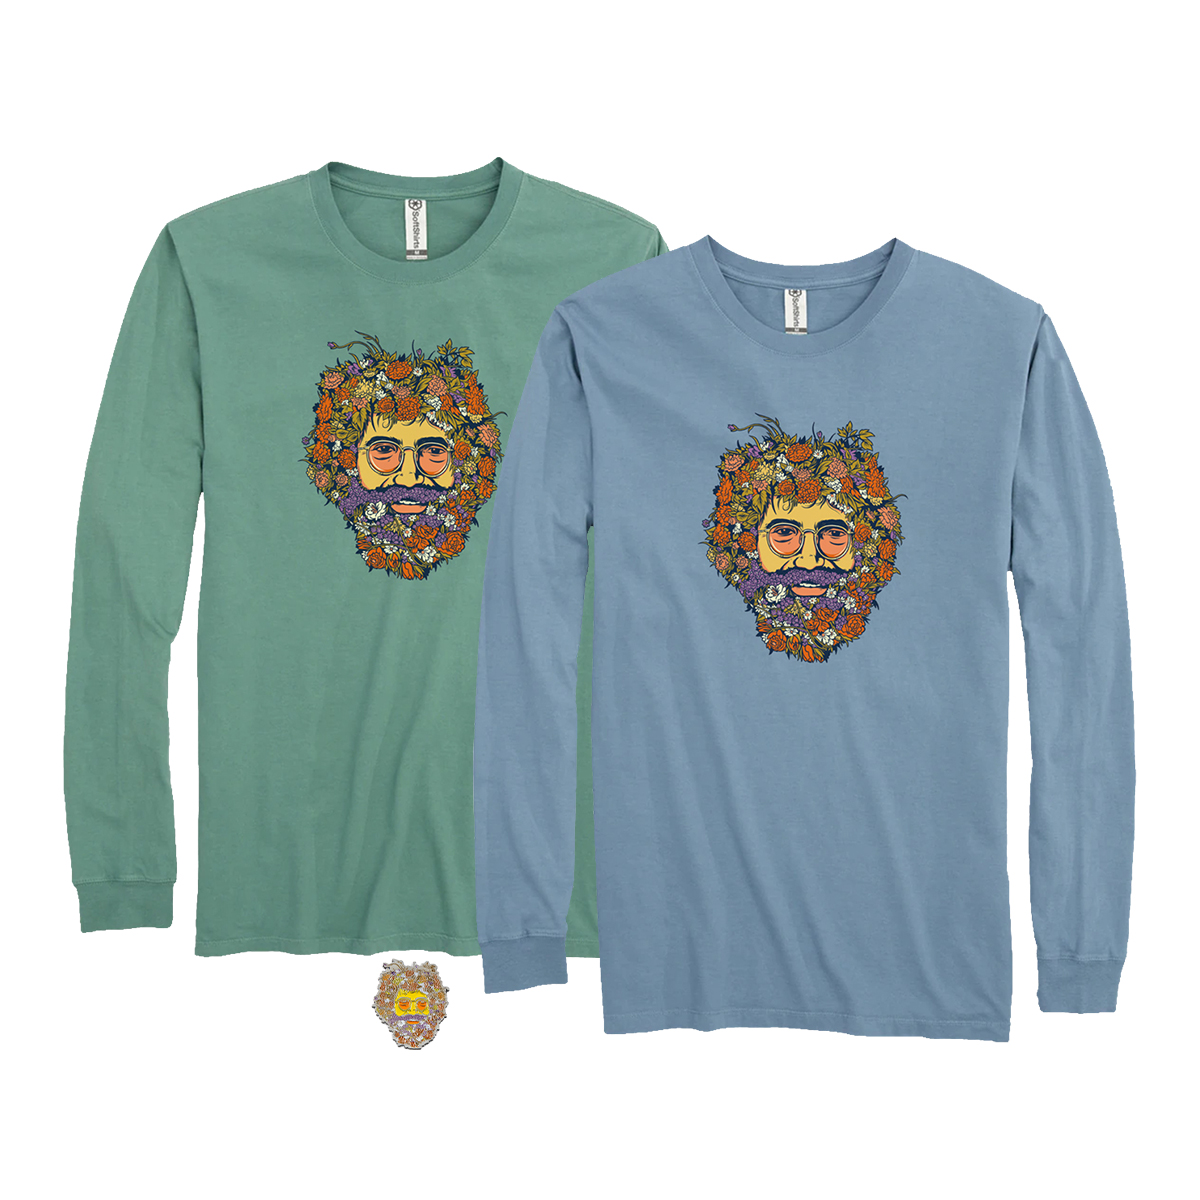 Jerry In Bloom Pin + Organic Cotton T-Shirt Bundle